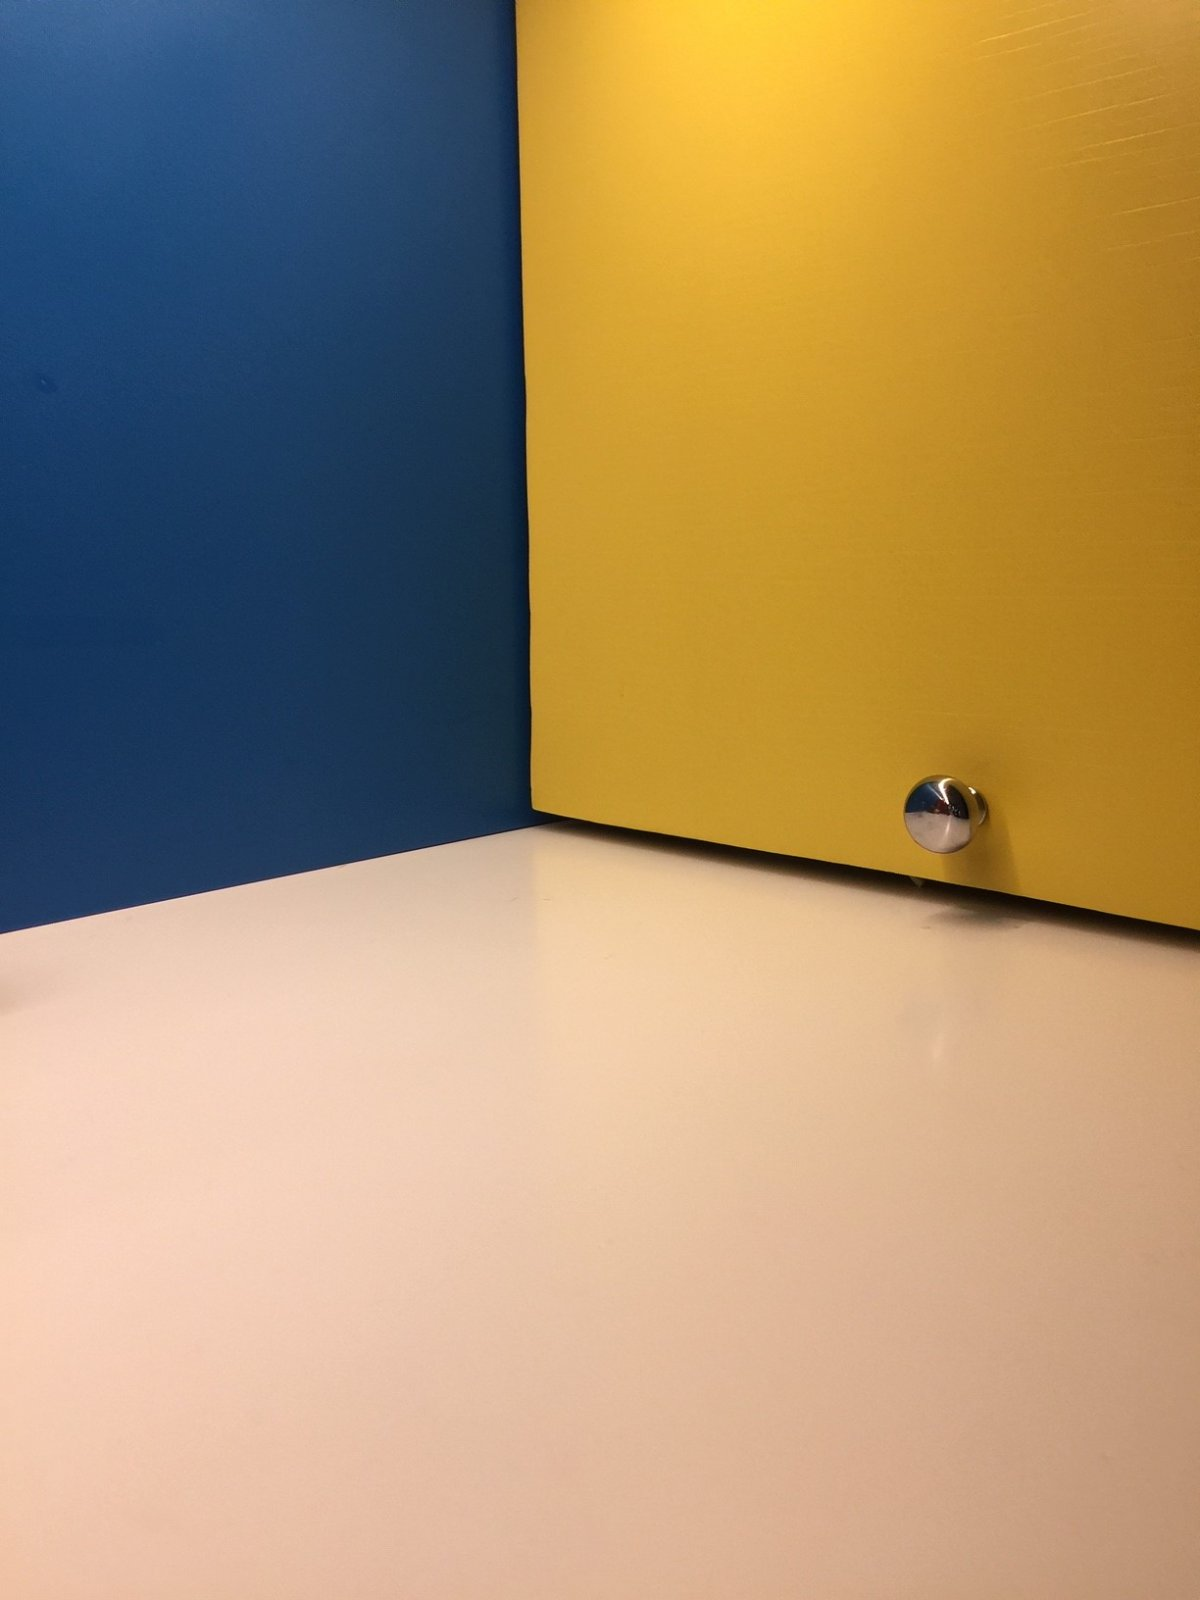 Click image for larger version  Name:190301 kitchen colors.jpg Views:23 Size:115.9 KB ID:334688